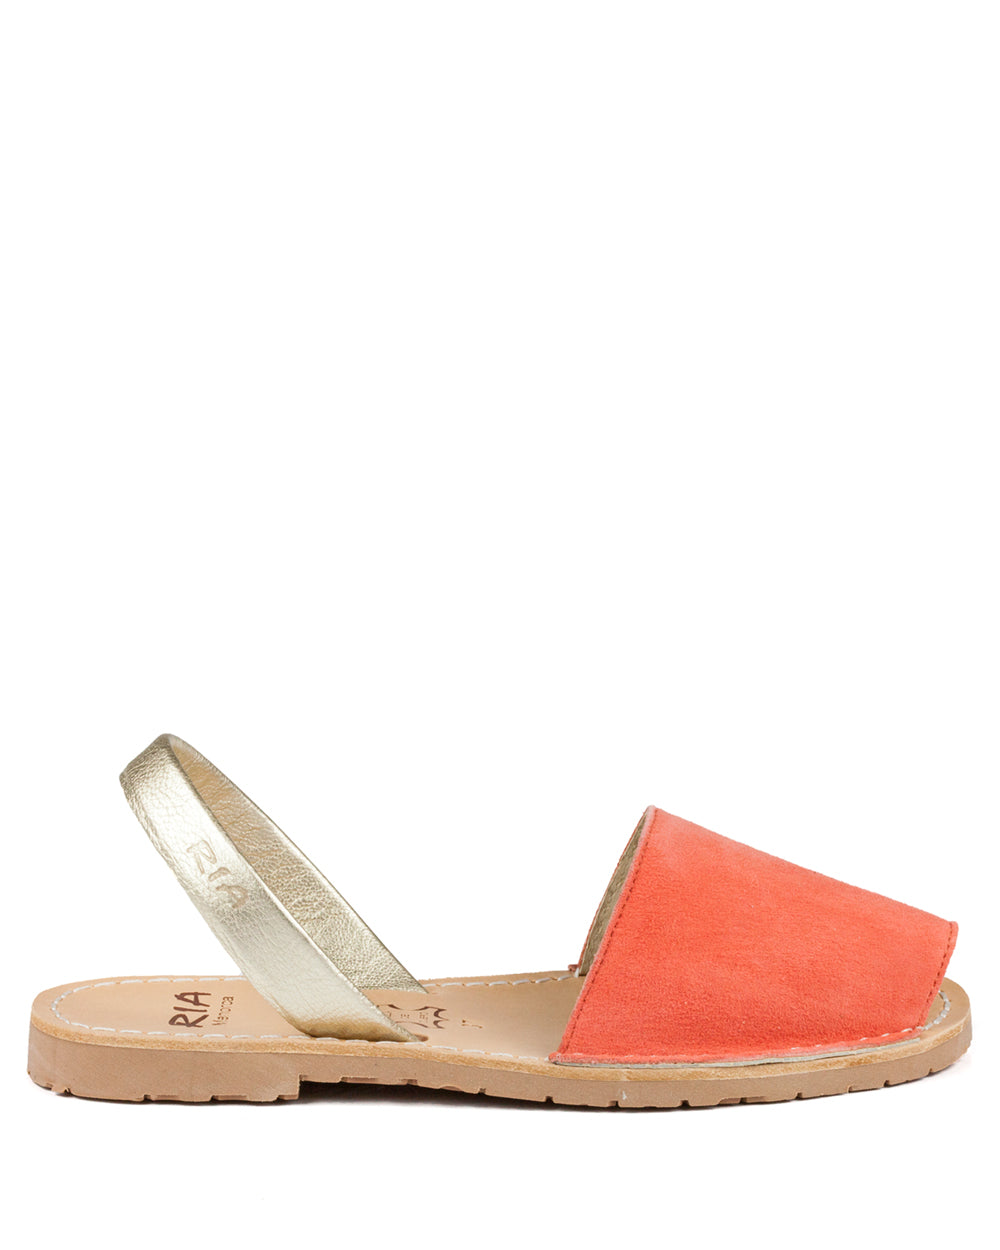 Menorcan Sandals Mango Suede & Gold - The Espadrille Hut